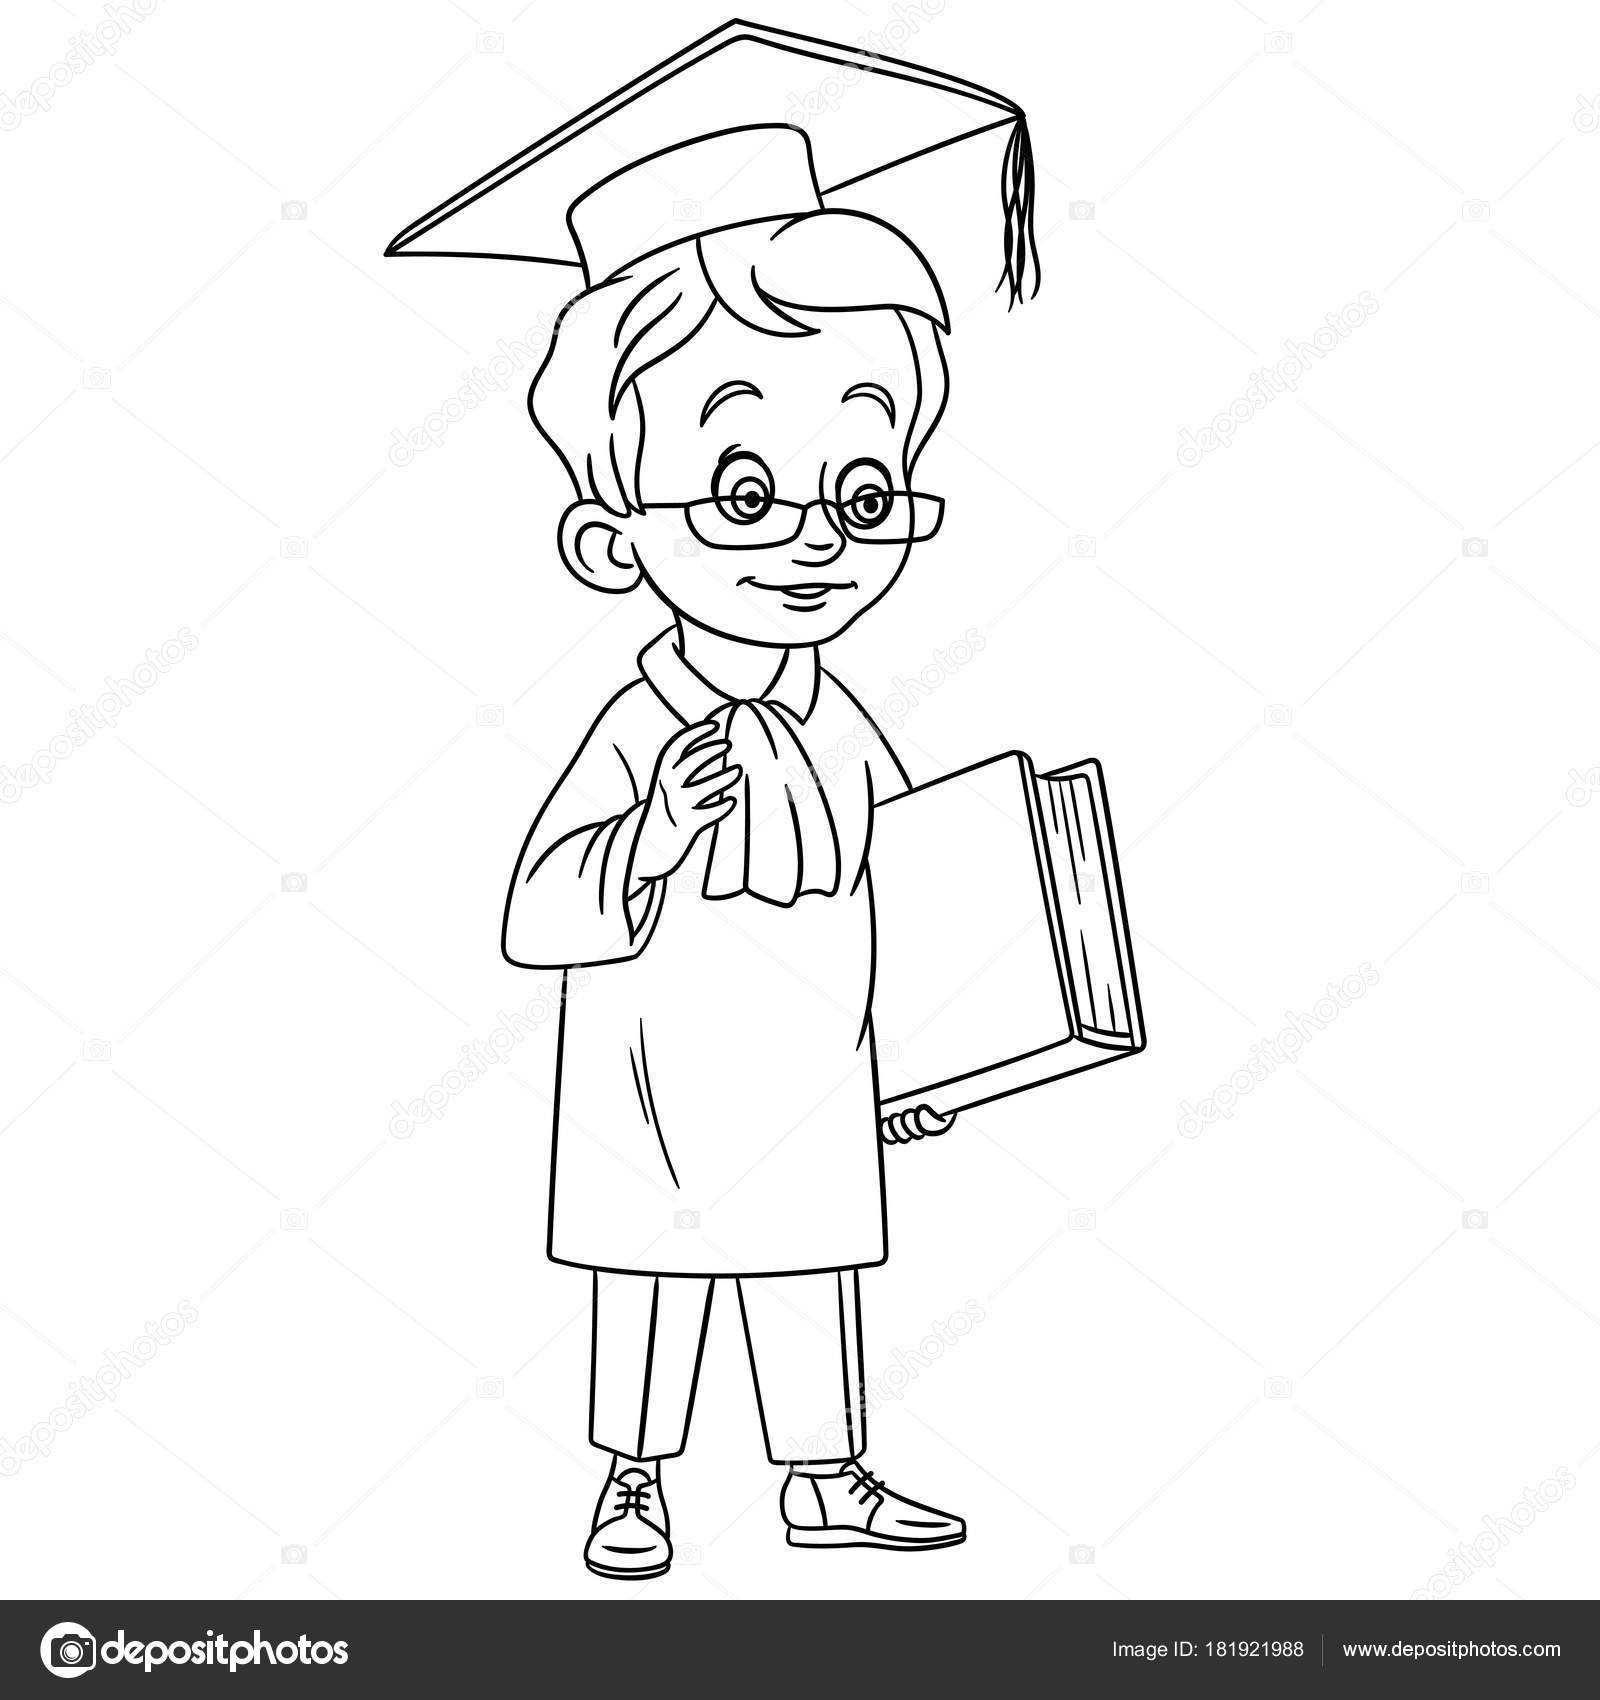 Coloring Page Cartoon Graduating Boy Graduation Cap Design